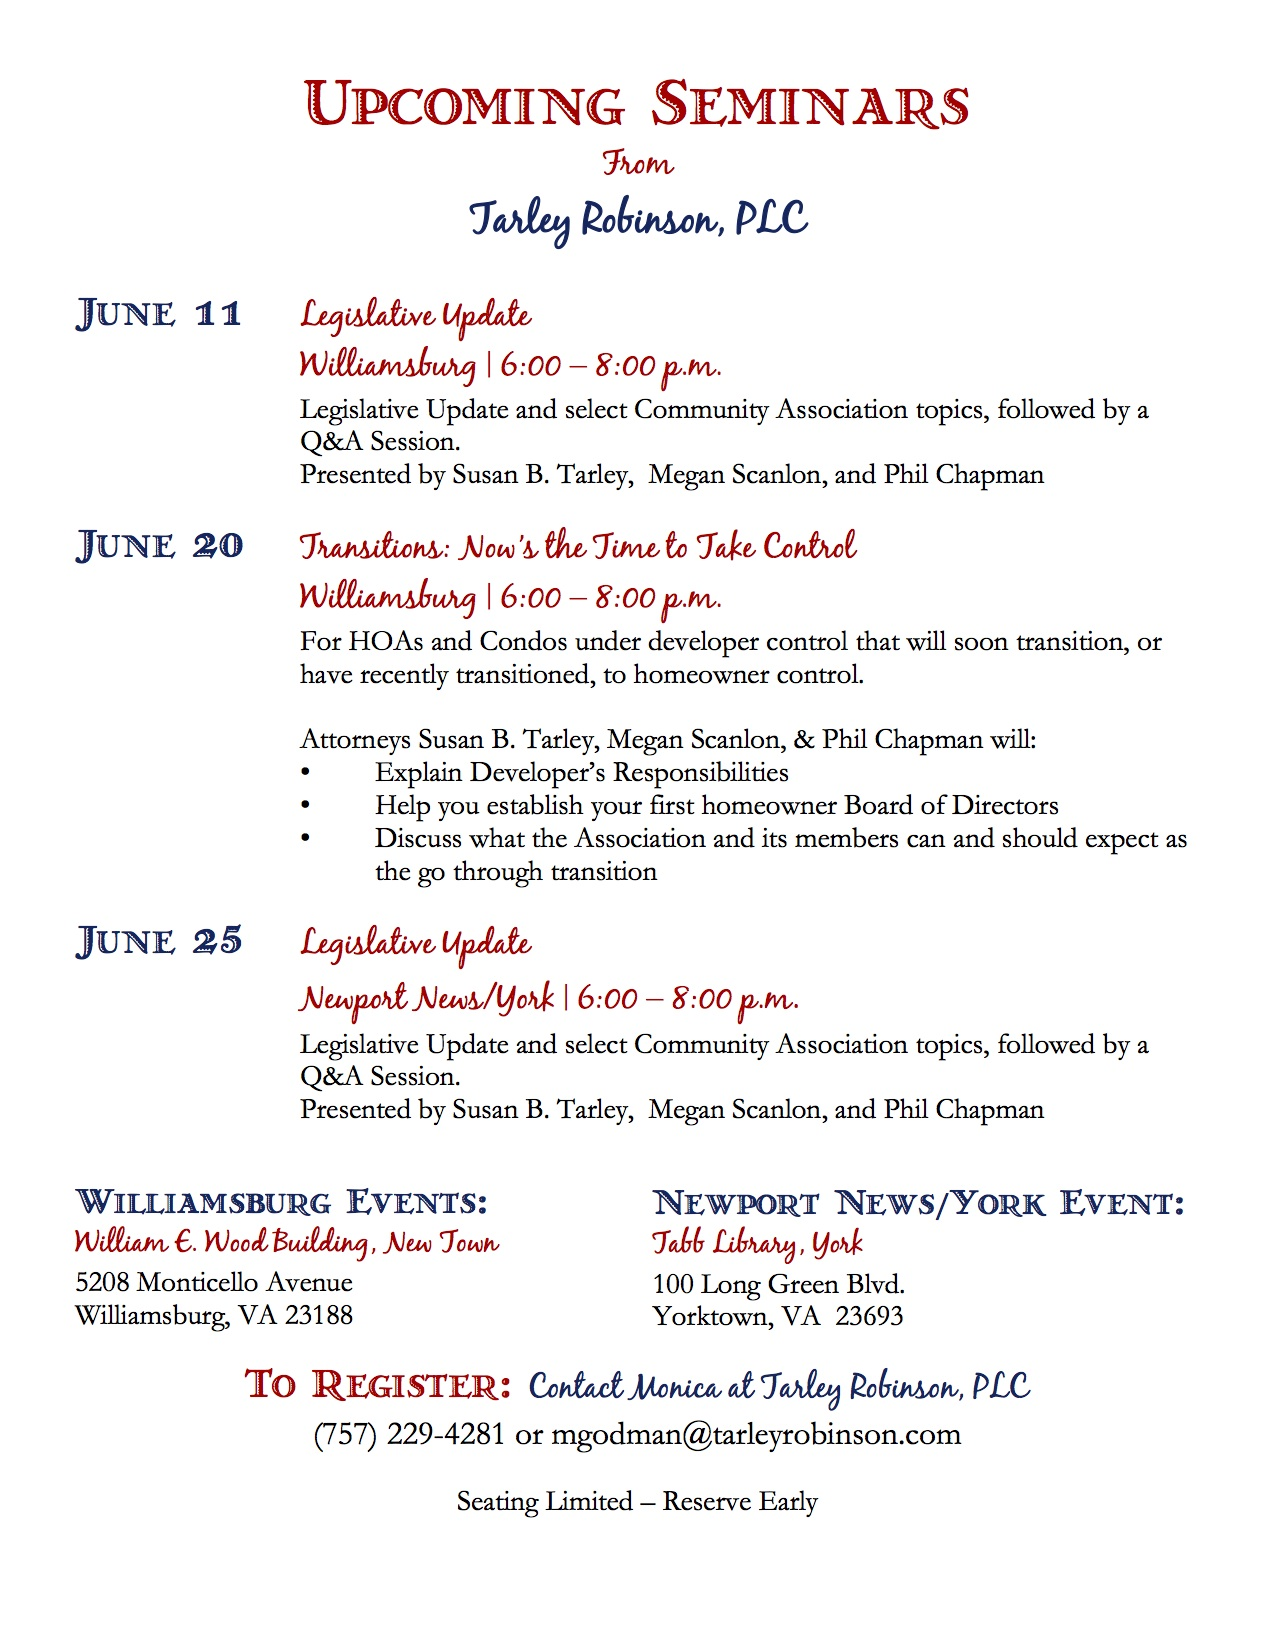 Tarley Robinson June Seminars